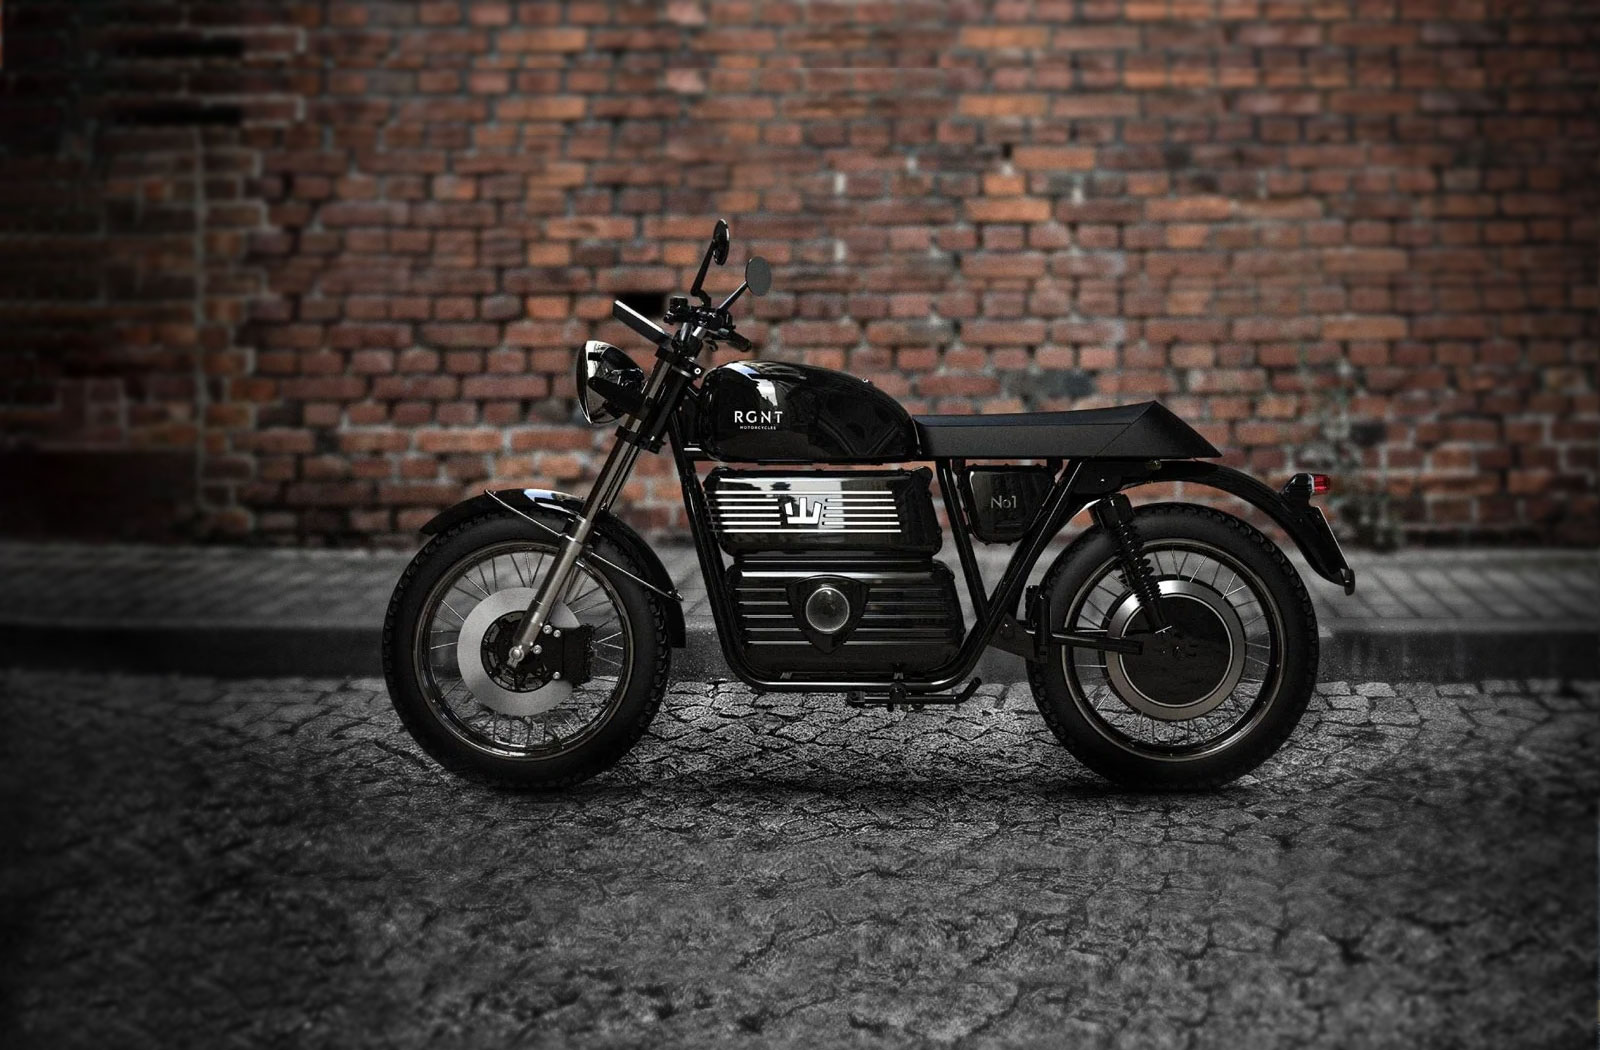 The RGNT No.1 Retro electric motorcycle